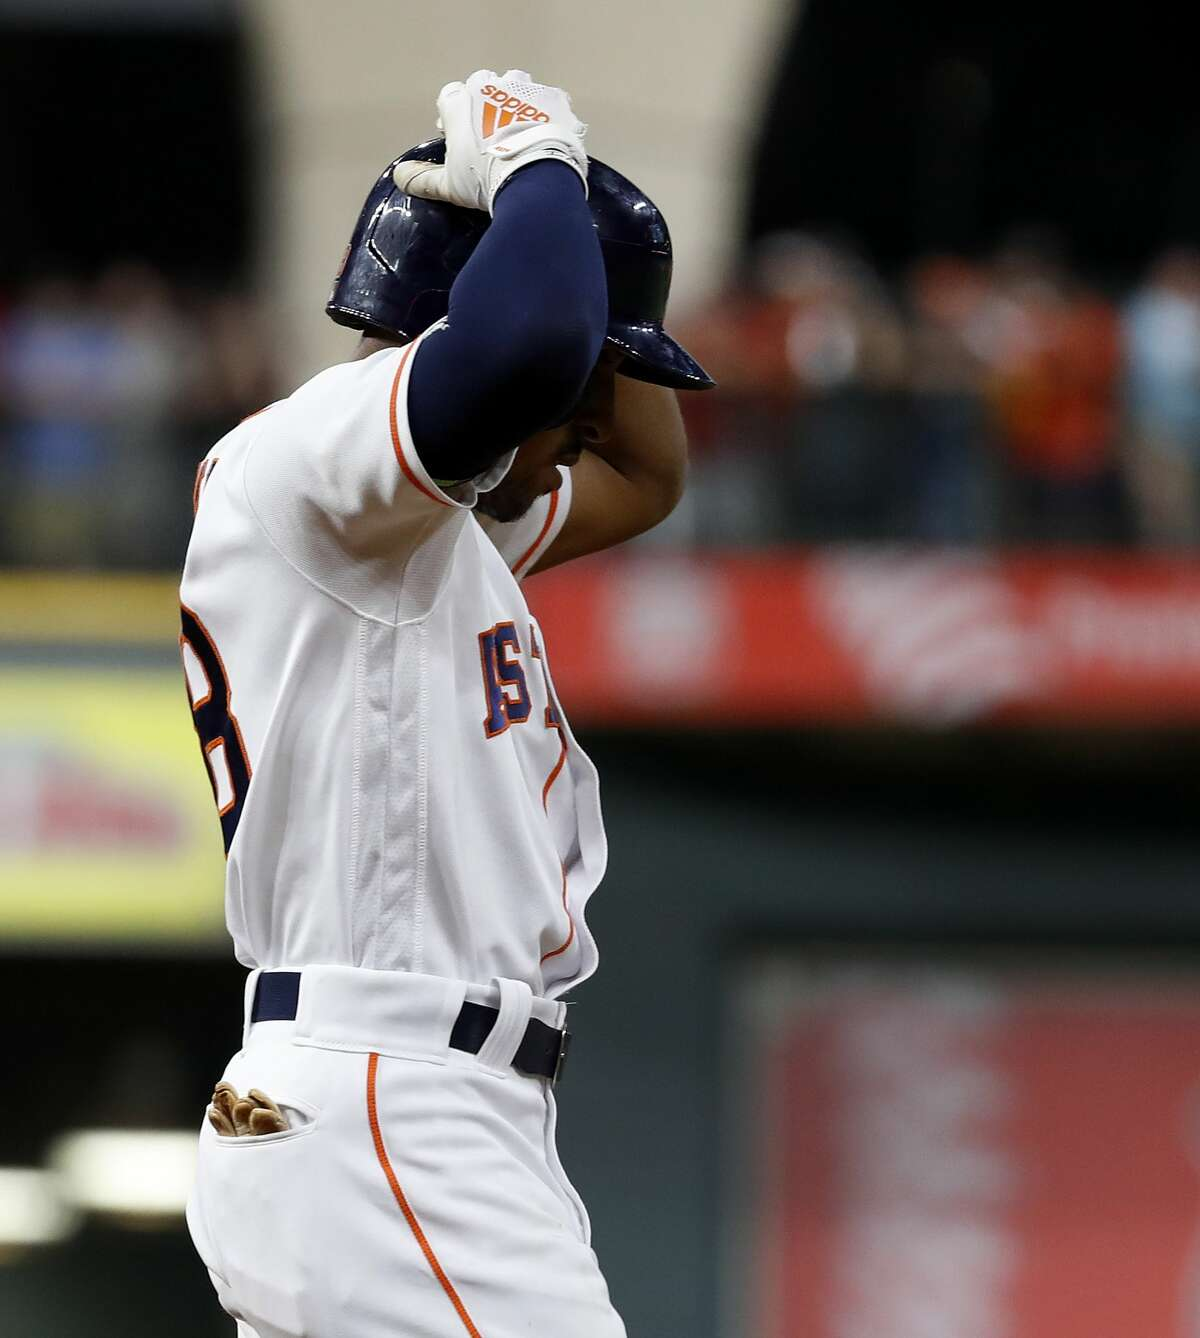 Houston Astros Tony Kemp (18) reacts after he lined into a double play during the eighth inning of an MLB game at Minute Maid Park, Saturday, August 11, 2018, in Houston.